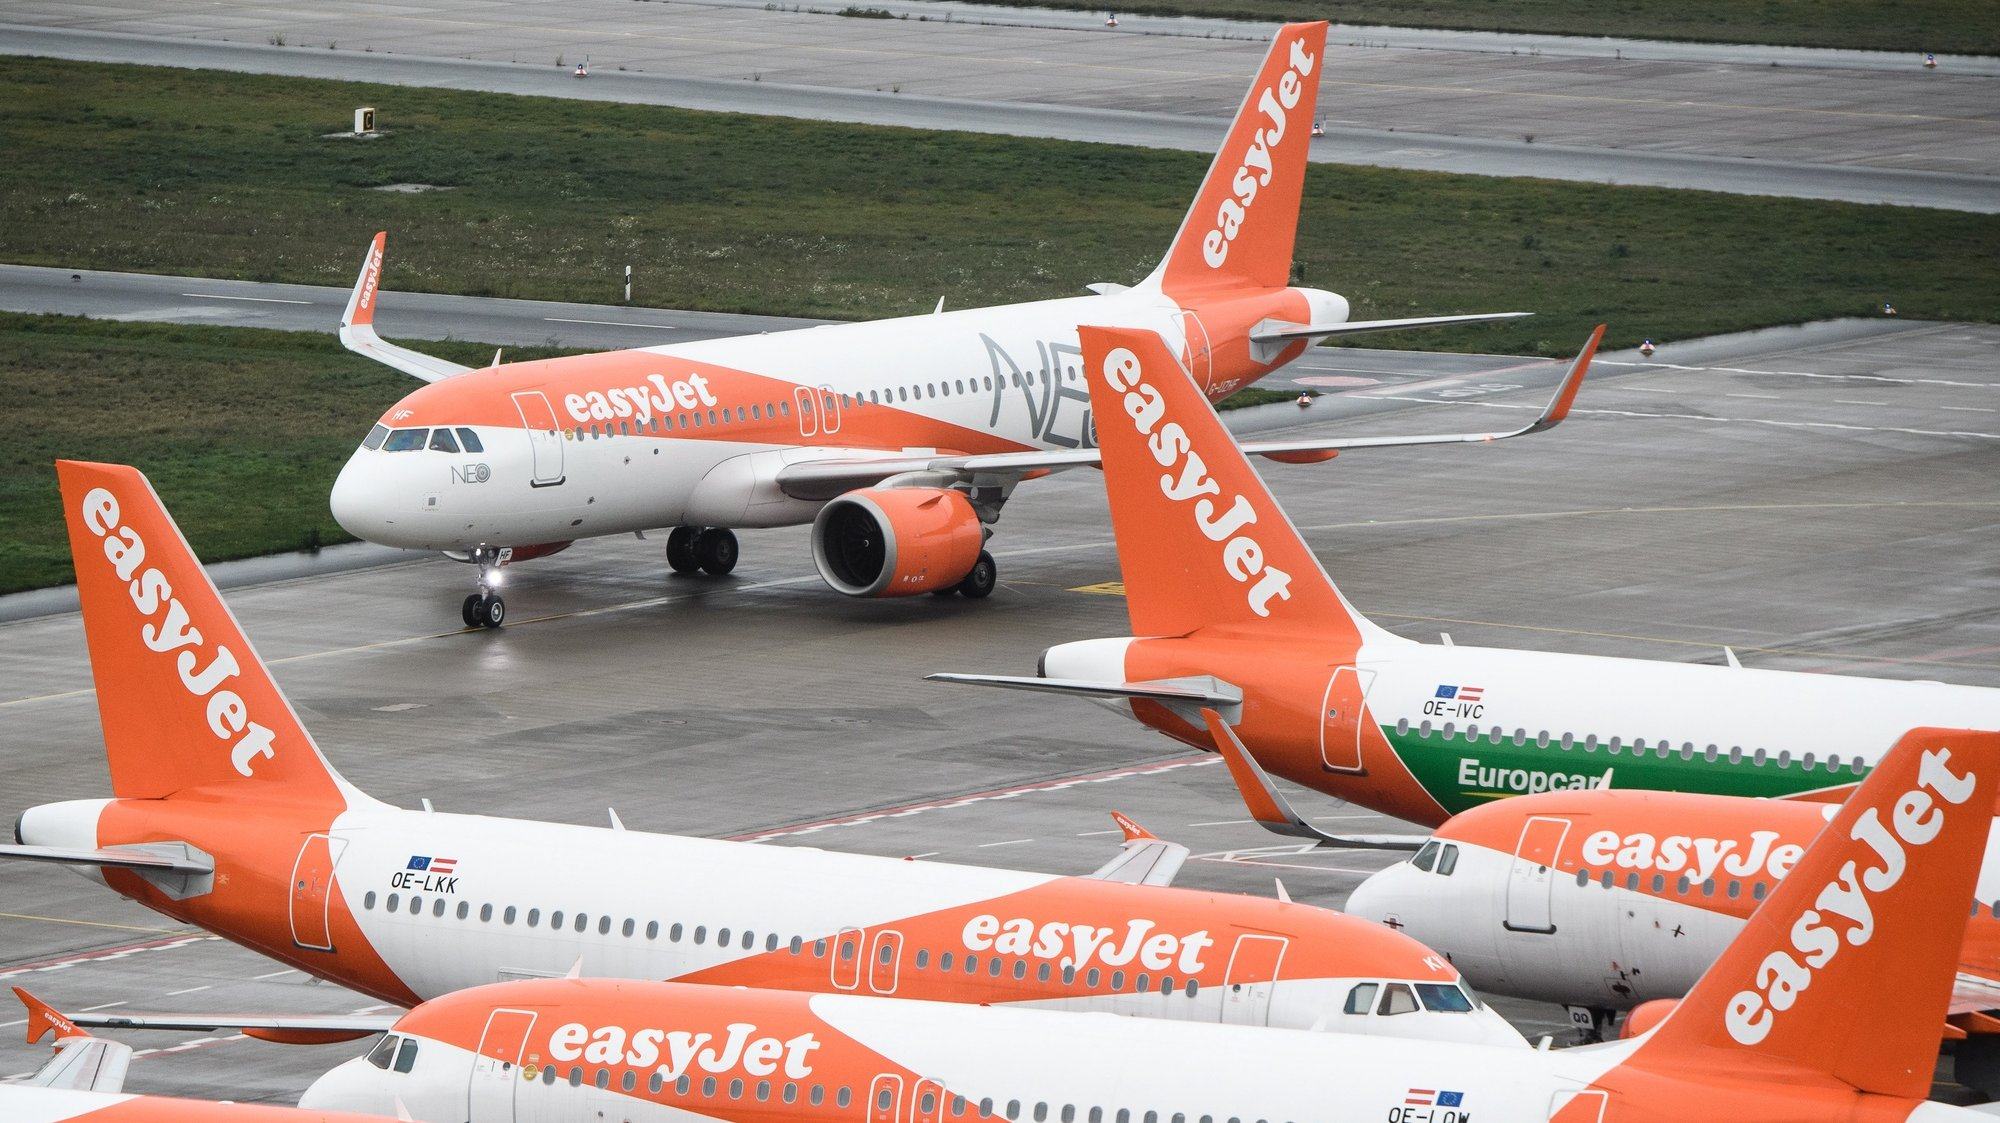 epa08825321 (FILE) - The first plane arriving, an EasyJet plane (back), taxiing on the tarmac during the opening of BER Berlin Brandenburg Airport in Schoenefeld, Germany, 31 October 2020 (reissued 17 November 2020). Easyjet will release their Financial Year 2020 results on 17 November 2020.  EPA/CLEMENS BILAN / POOL *** Local Caption *** 56465488